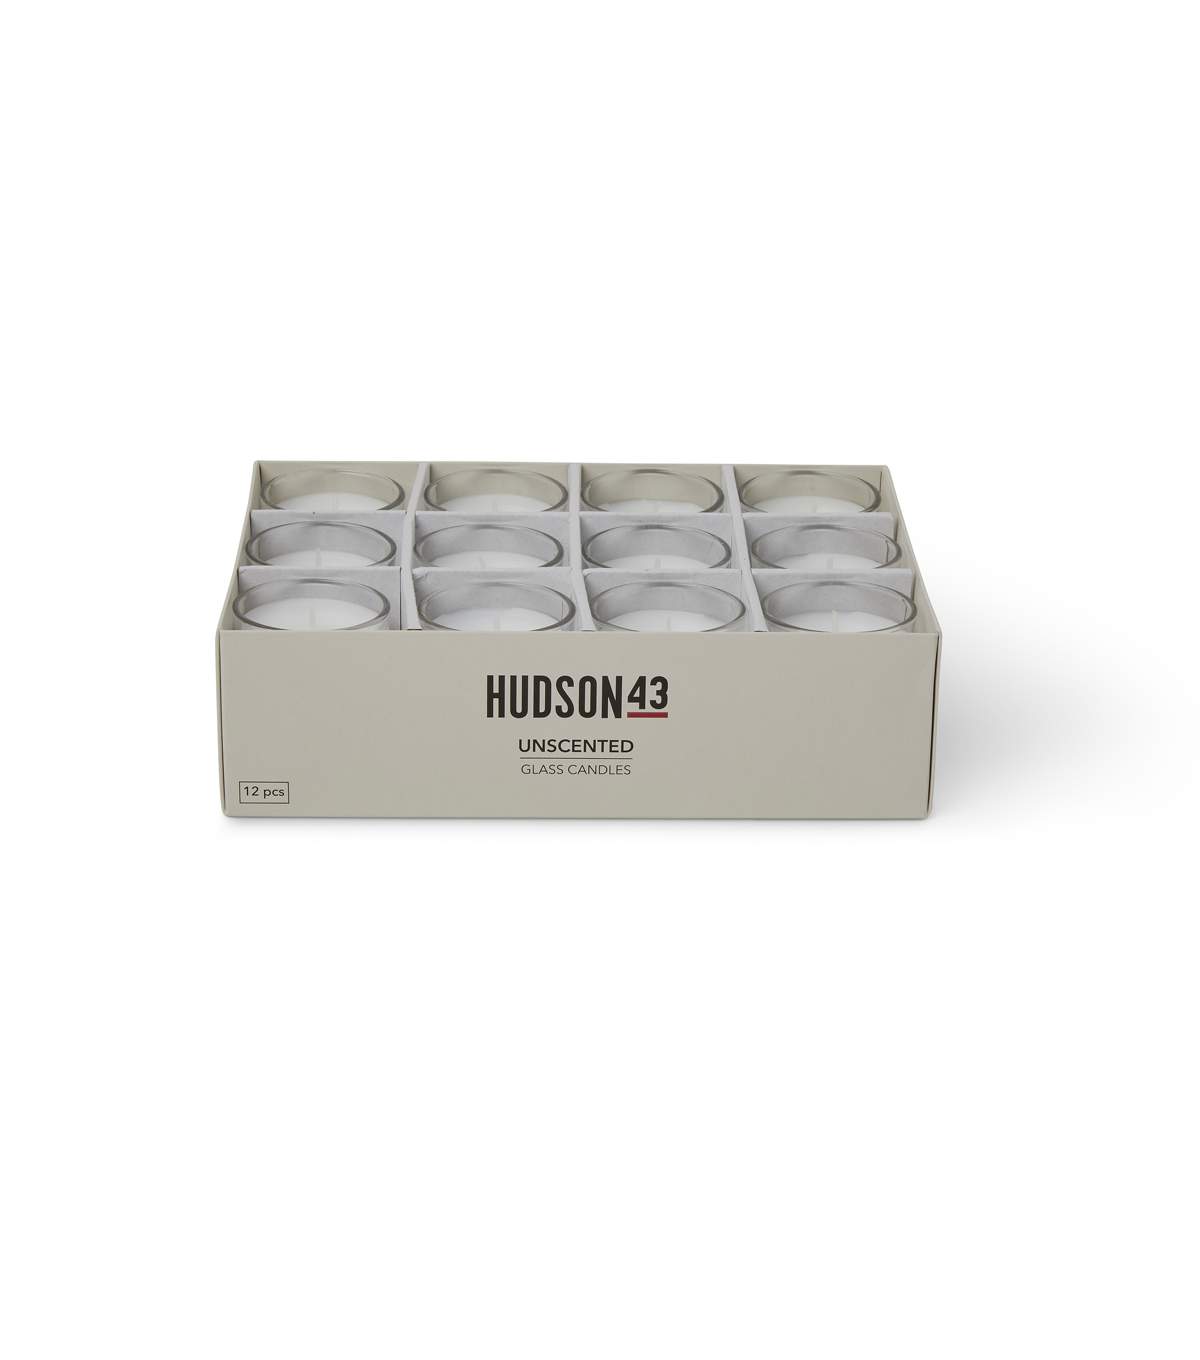 7c8120c4975 Hudson 43 Candle   Light Unscented Glass Votive Candles-White